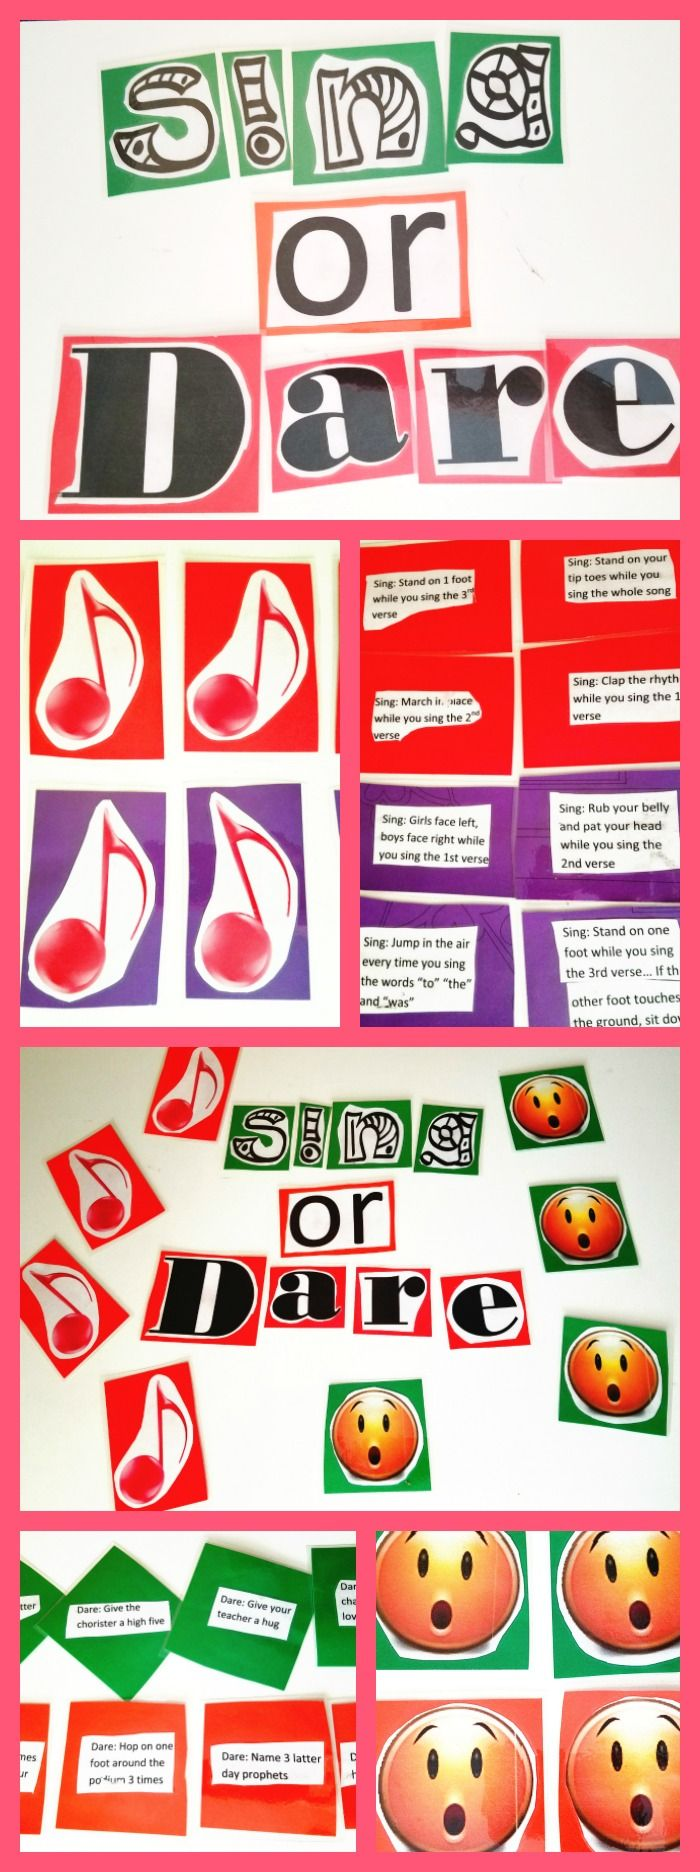 You have to do this game next Sunday I made two sets of each thing: musical notes and surprise emojis: I did 4 for Jr and 4 for Sr and made them different colors so I wouldn't get them confus…